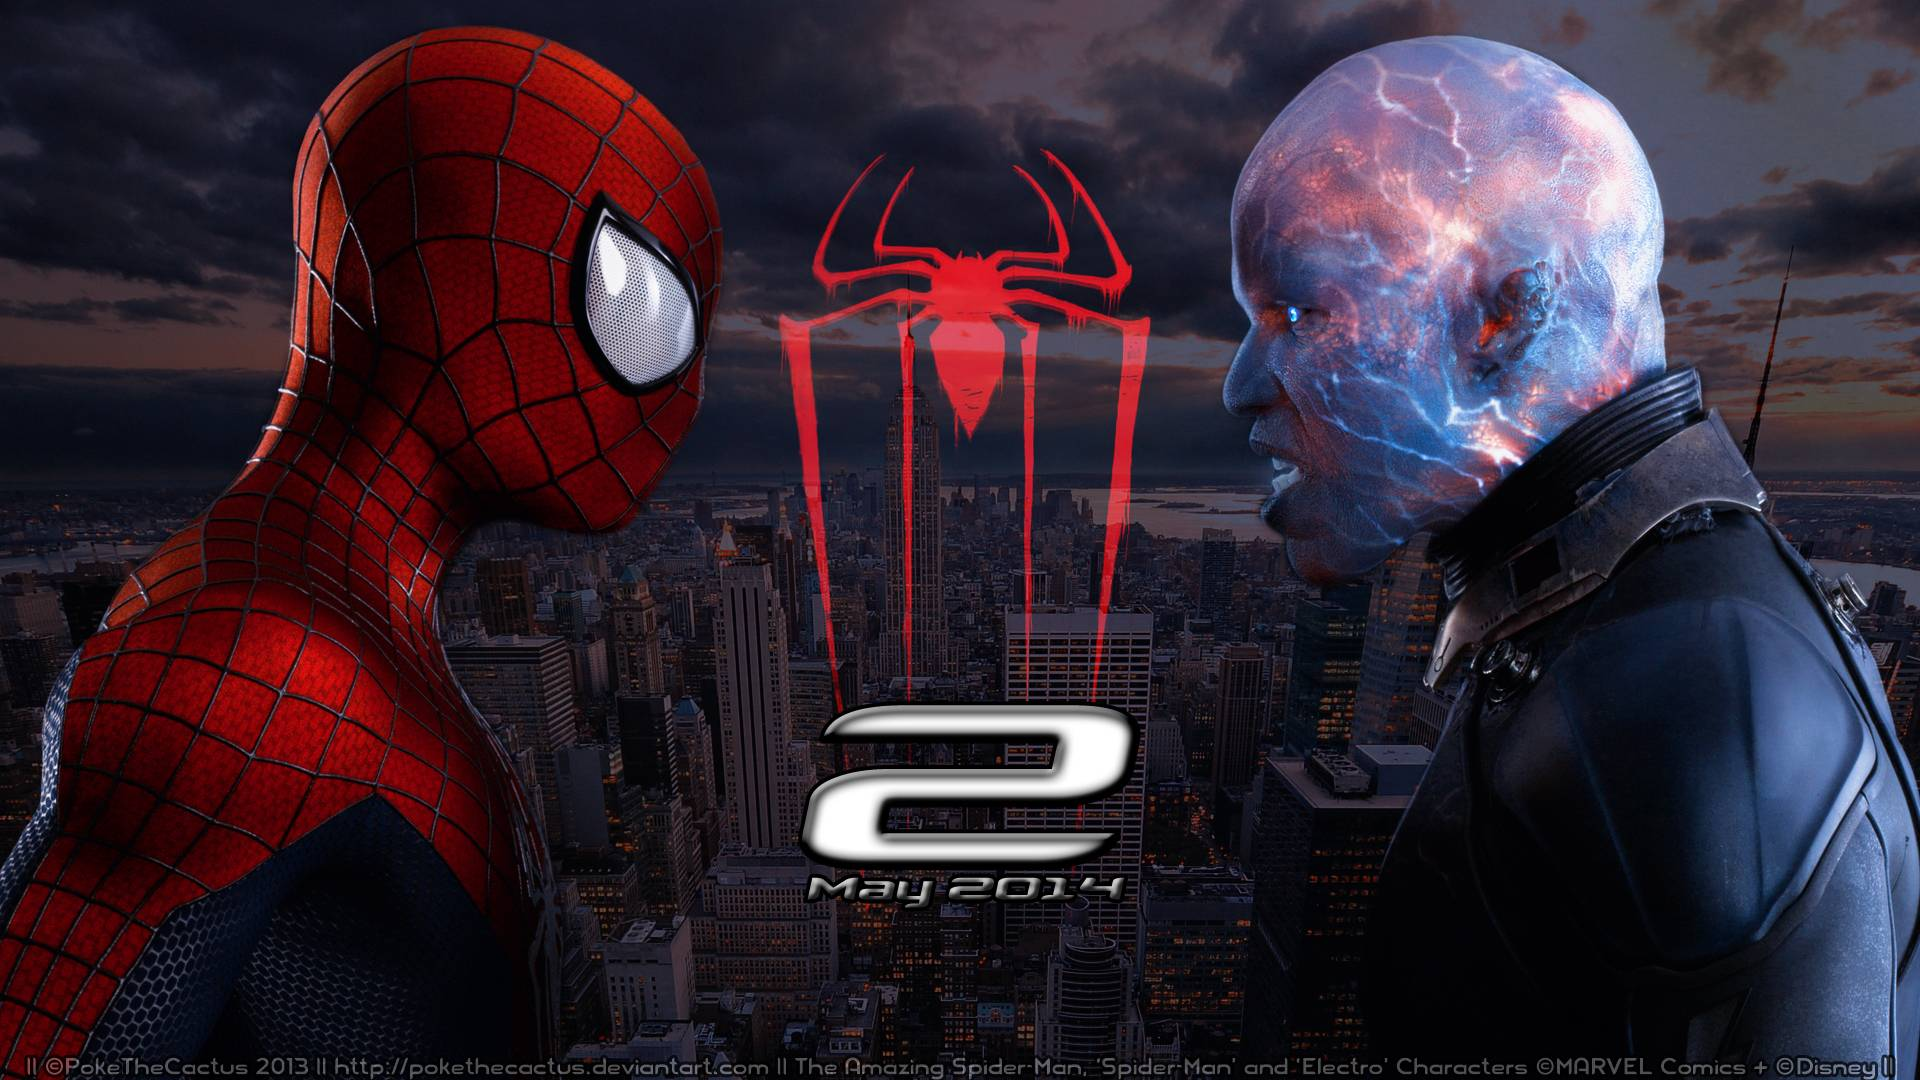 Tags: marvel wallpaperThe amazing spiderman 2 wallpapers